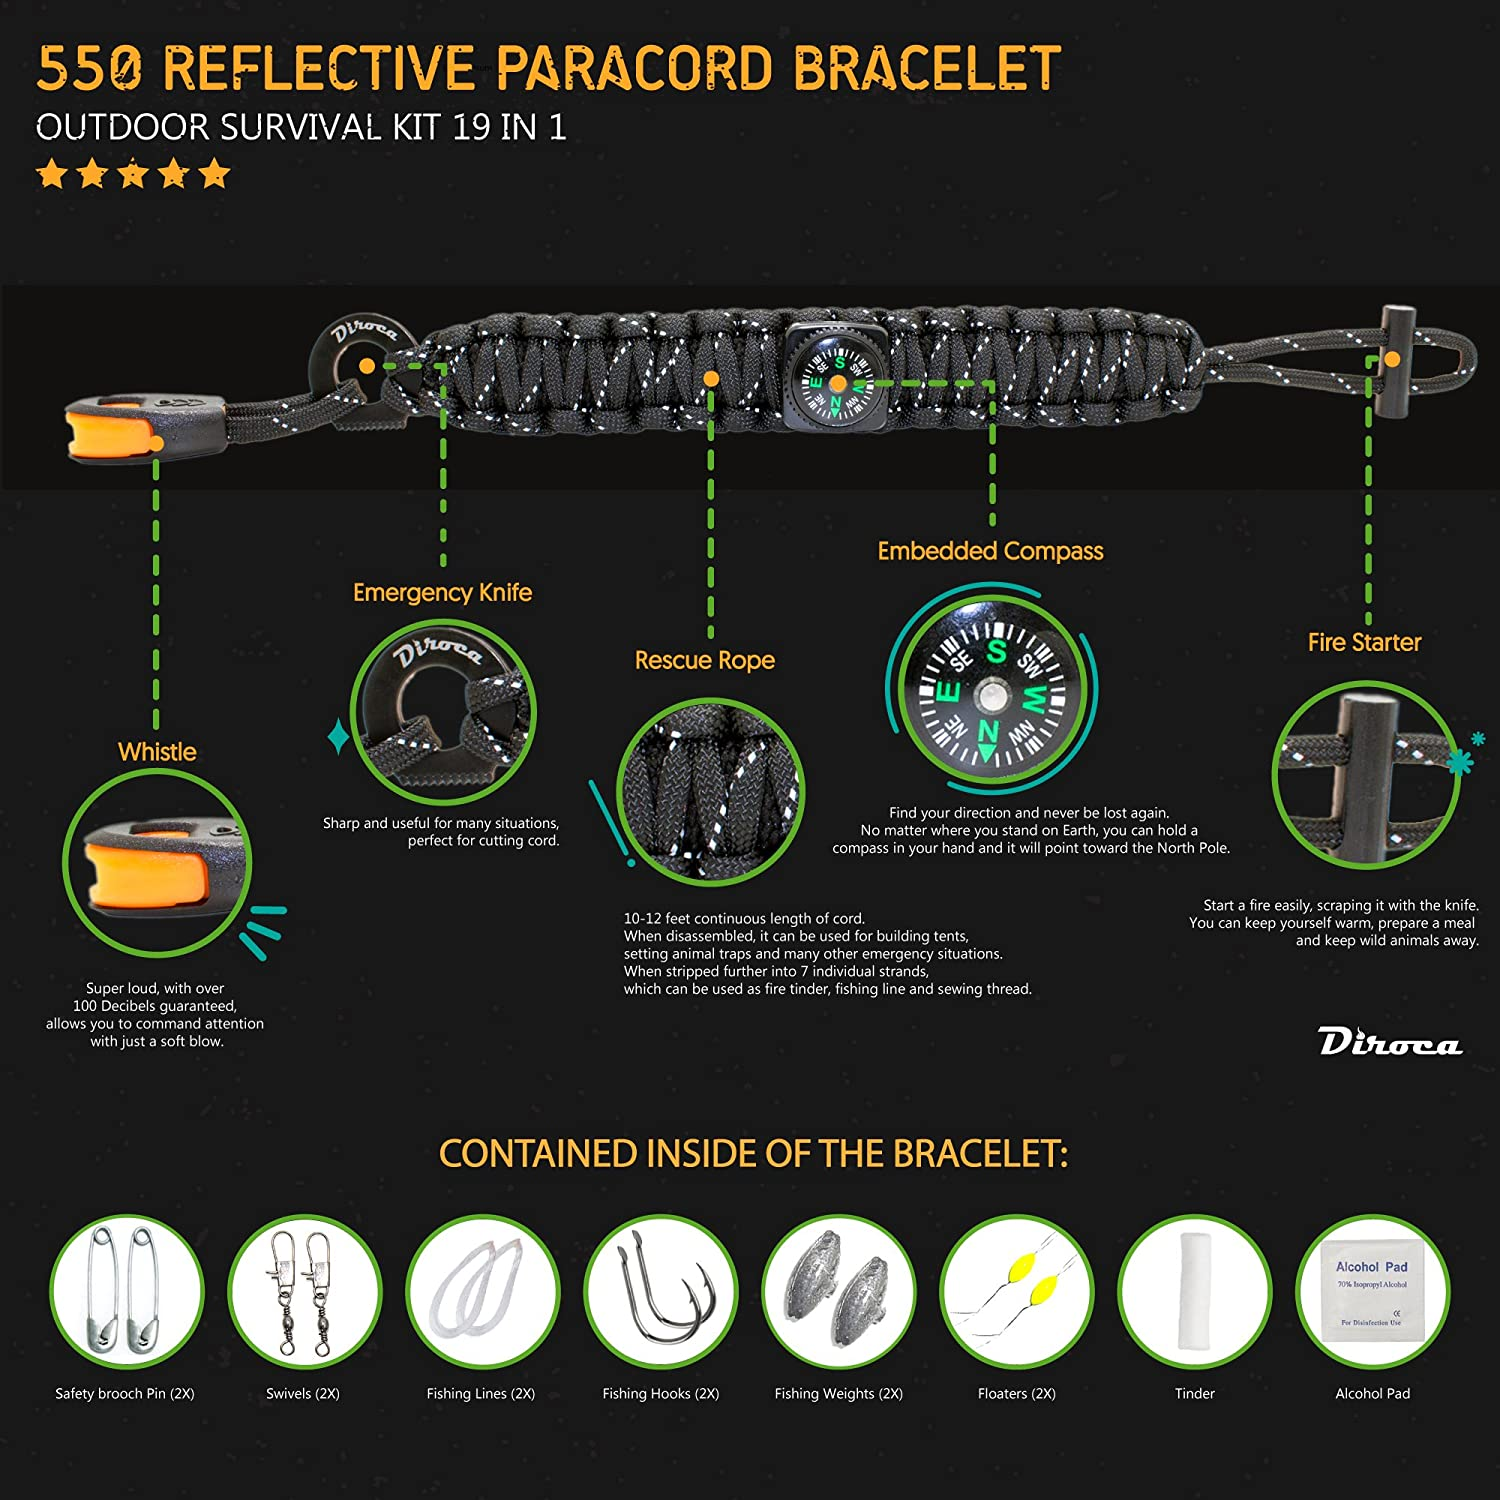 Best Backpacking and Trekking Gear, buy Affordable Paracord bracelet, Best Paracord bracelet